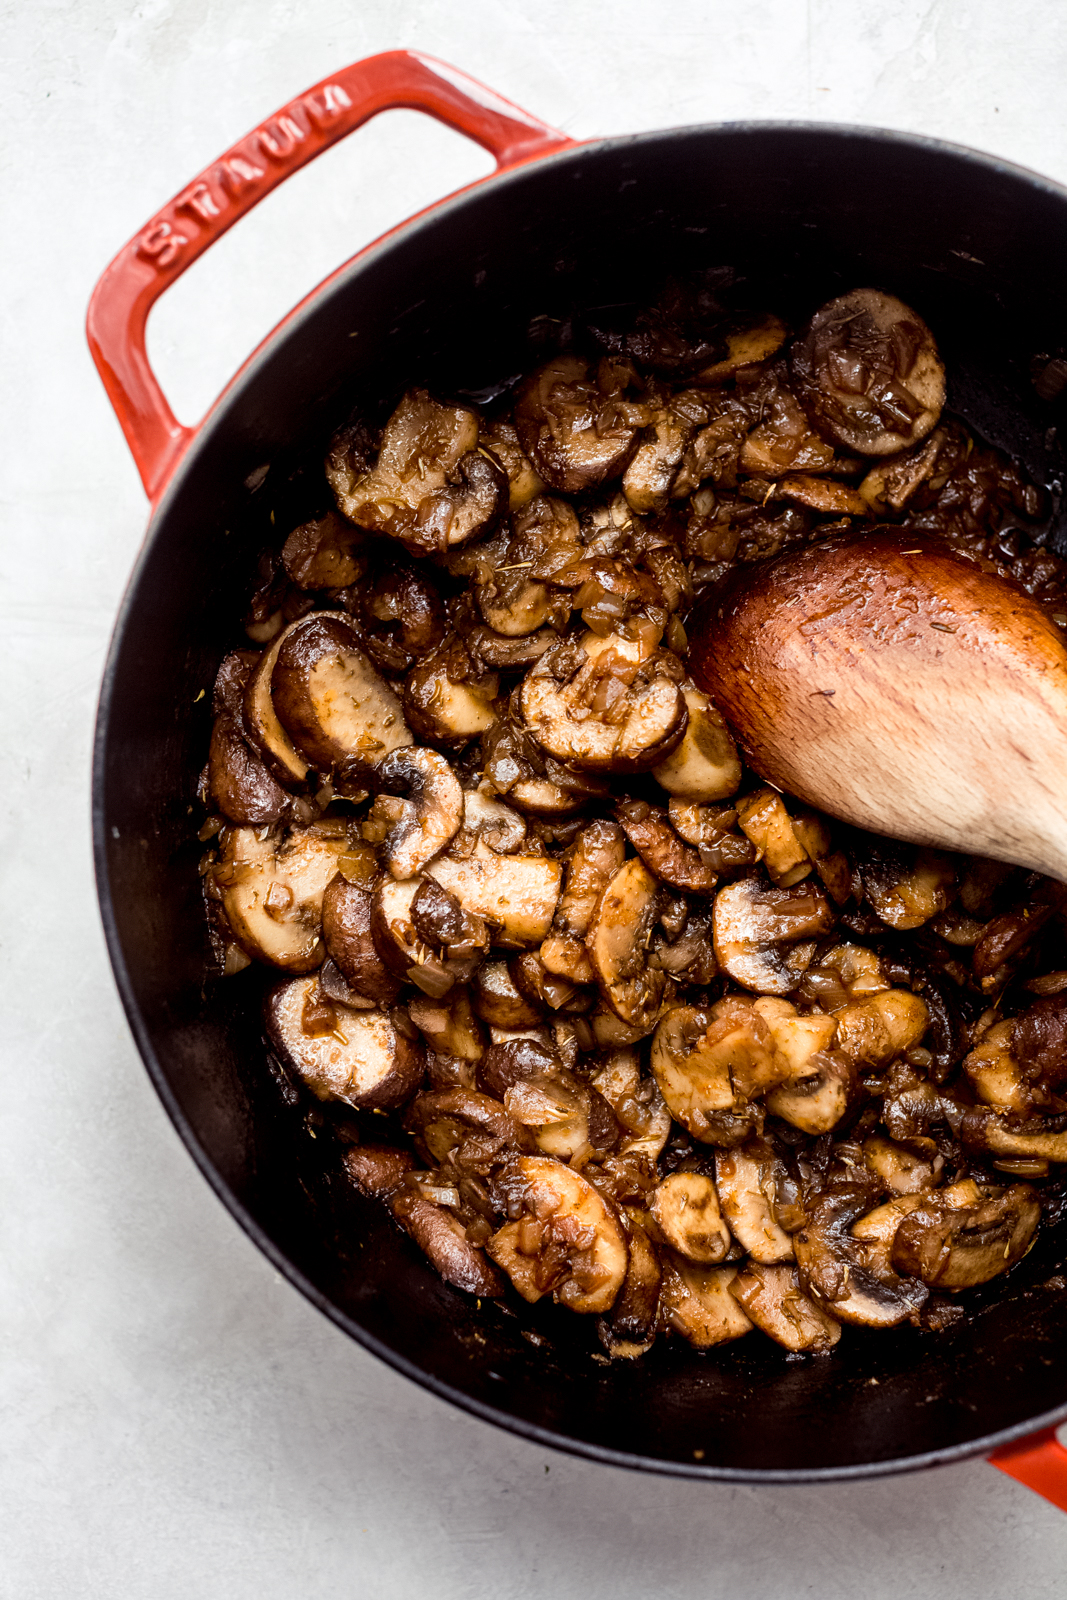 sautéed mushrooms in a pot with wooden spoon